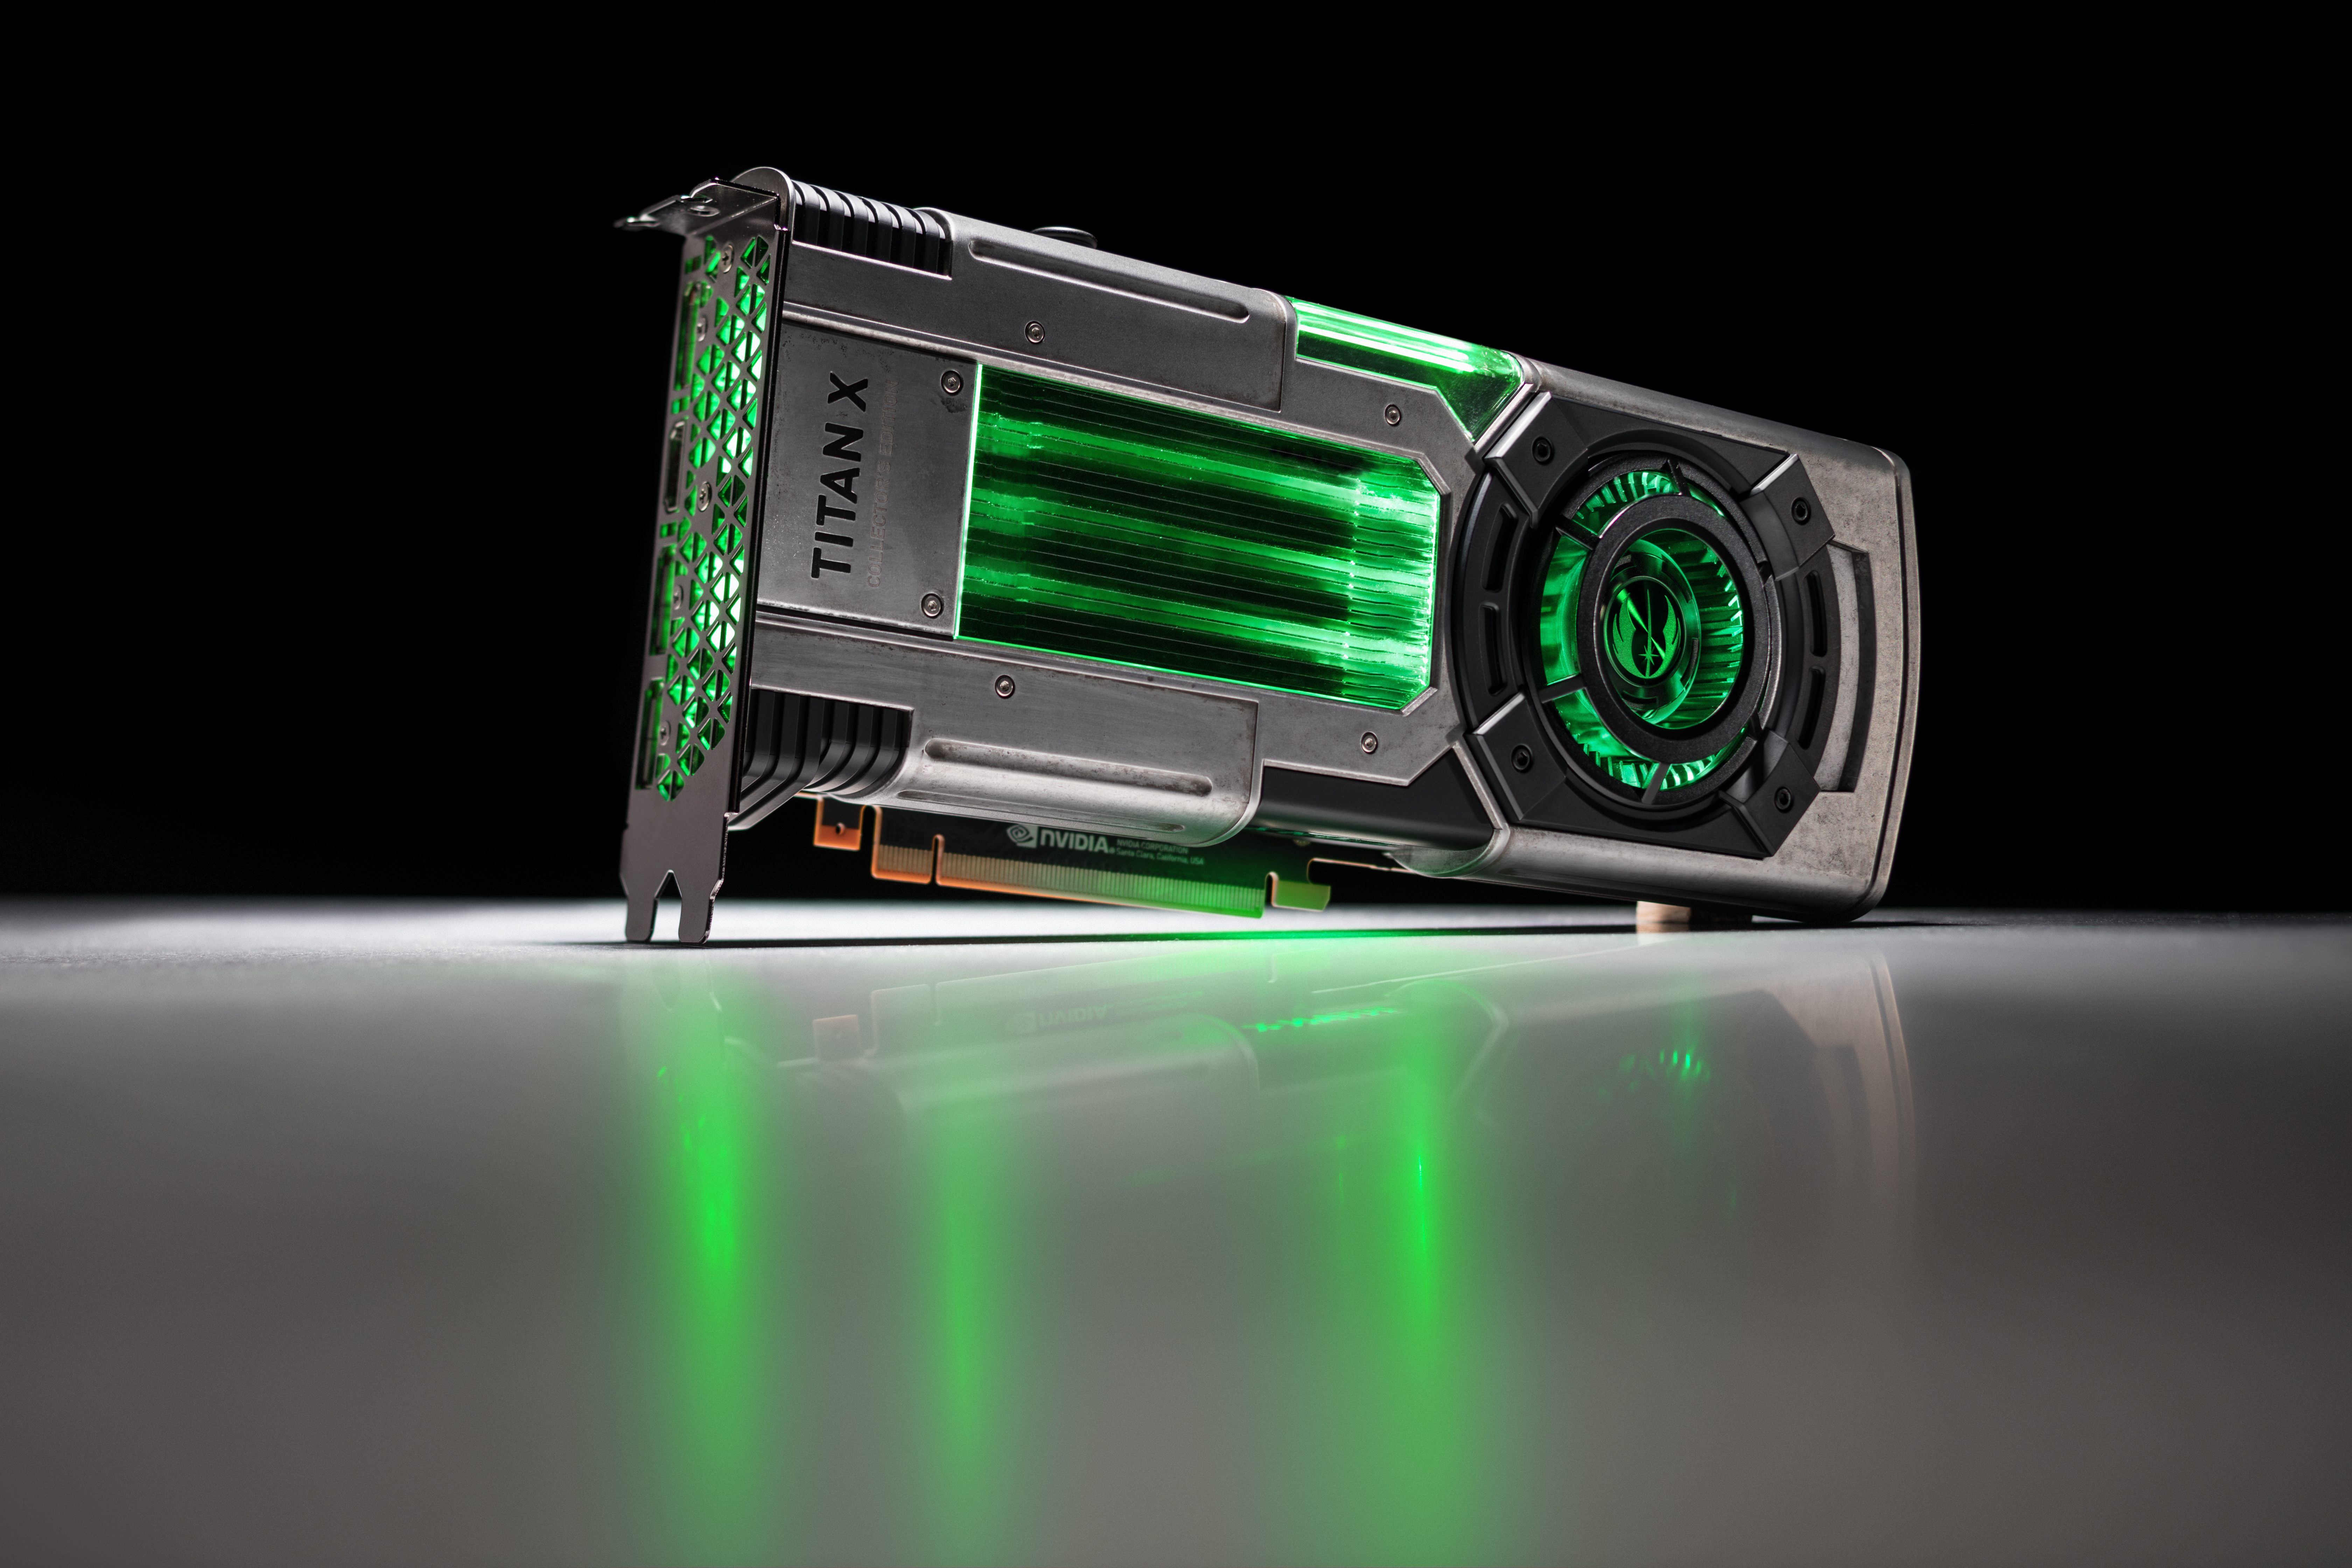 Star wars fans light and dark side collectors edition nvidia titan nvidia titan xp star wars collectors edition jedi order gpu photo 001 stopboris Image collections